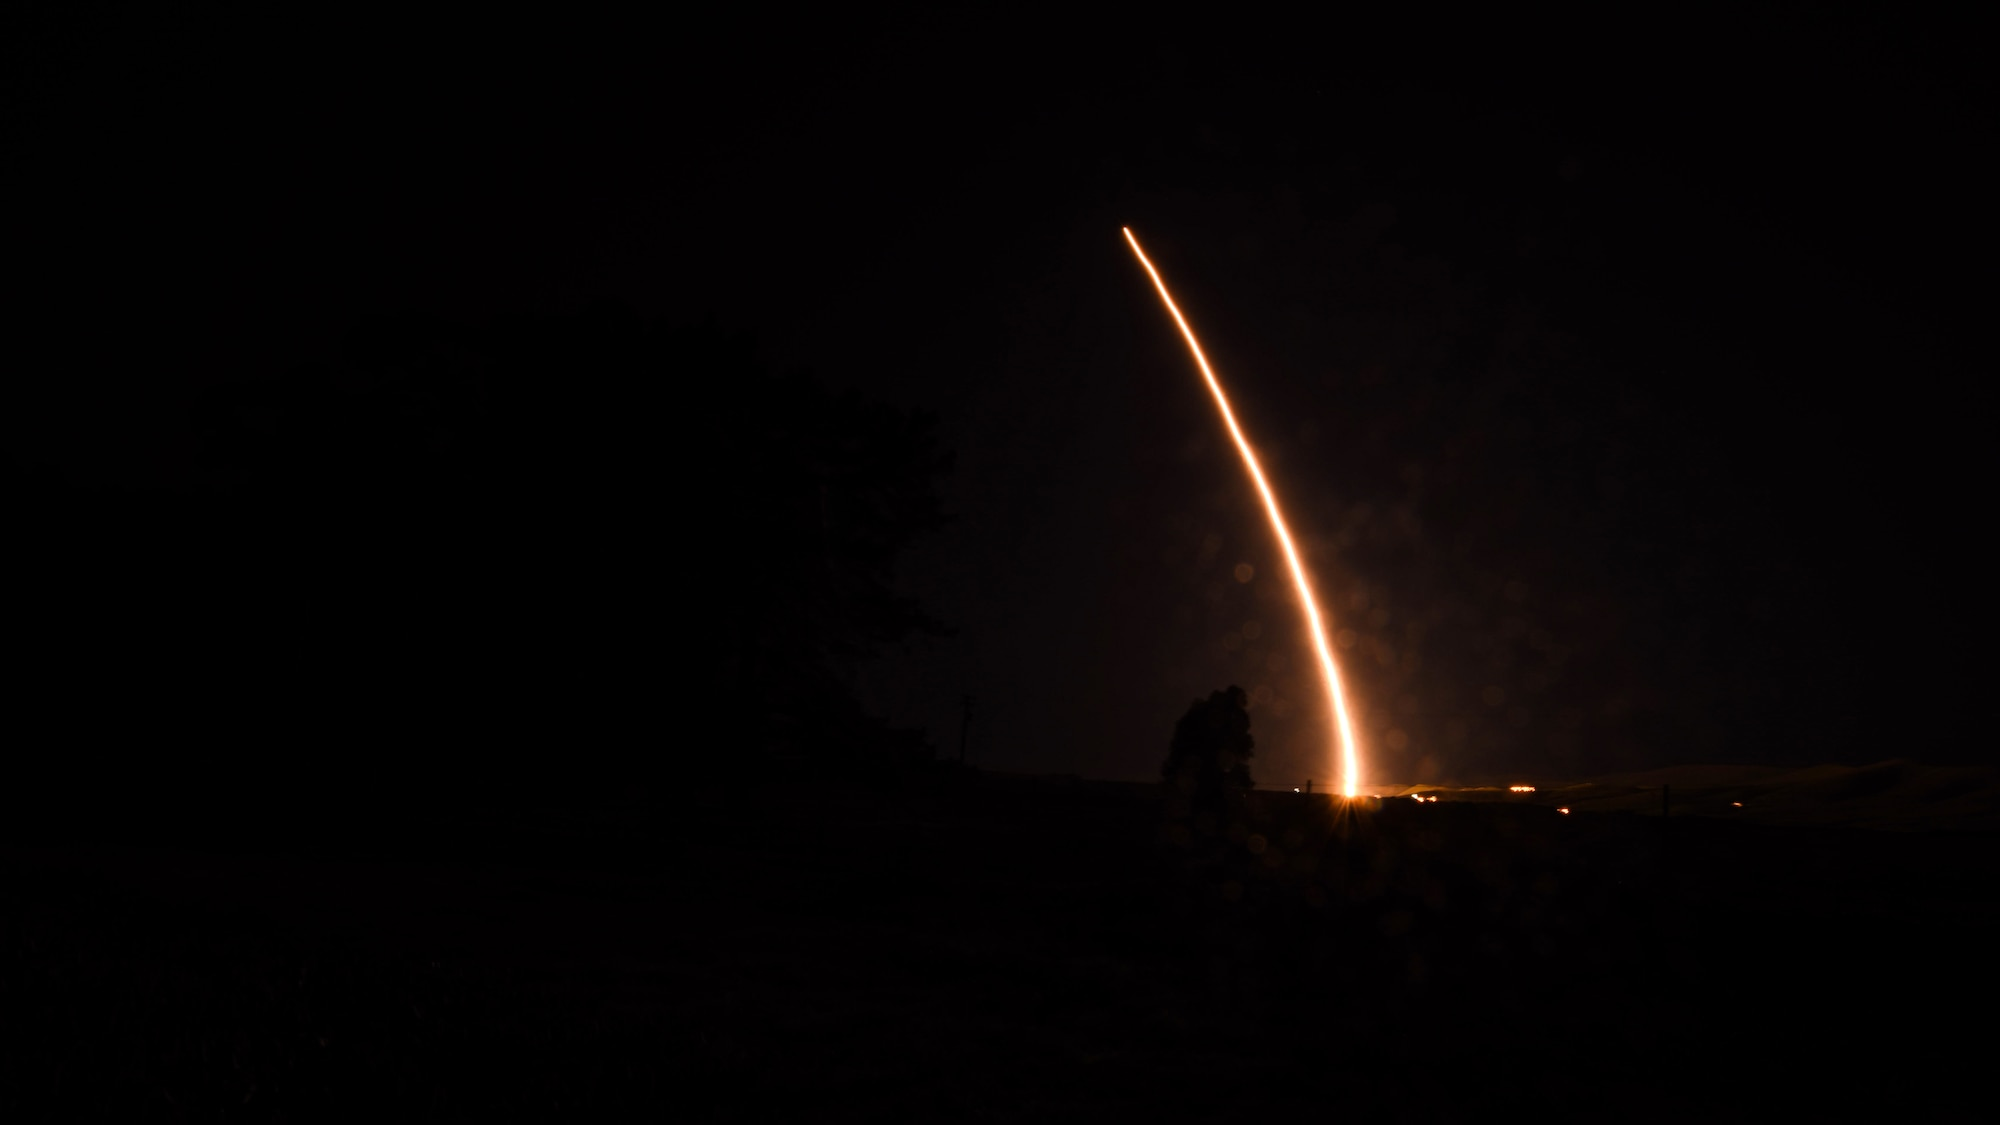 An unarmed Minuteman III intercontinental ballistic missile launches during an operational test, Feb. 5, 2019 at Vandenberg Air Force Base, Calif. There are many different components. Whether it be 30th Space Wing Airmen, mission partners, both government agencies and private companies or contractors, who contribute to launching a missile or rocket at Vandenberg AFB, each diverse role plays an important part in accomplishing the mission.